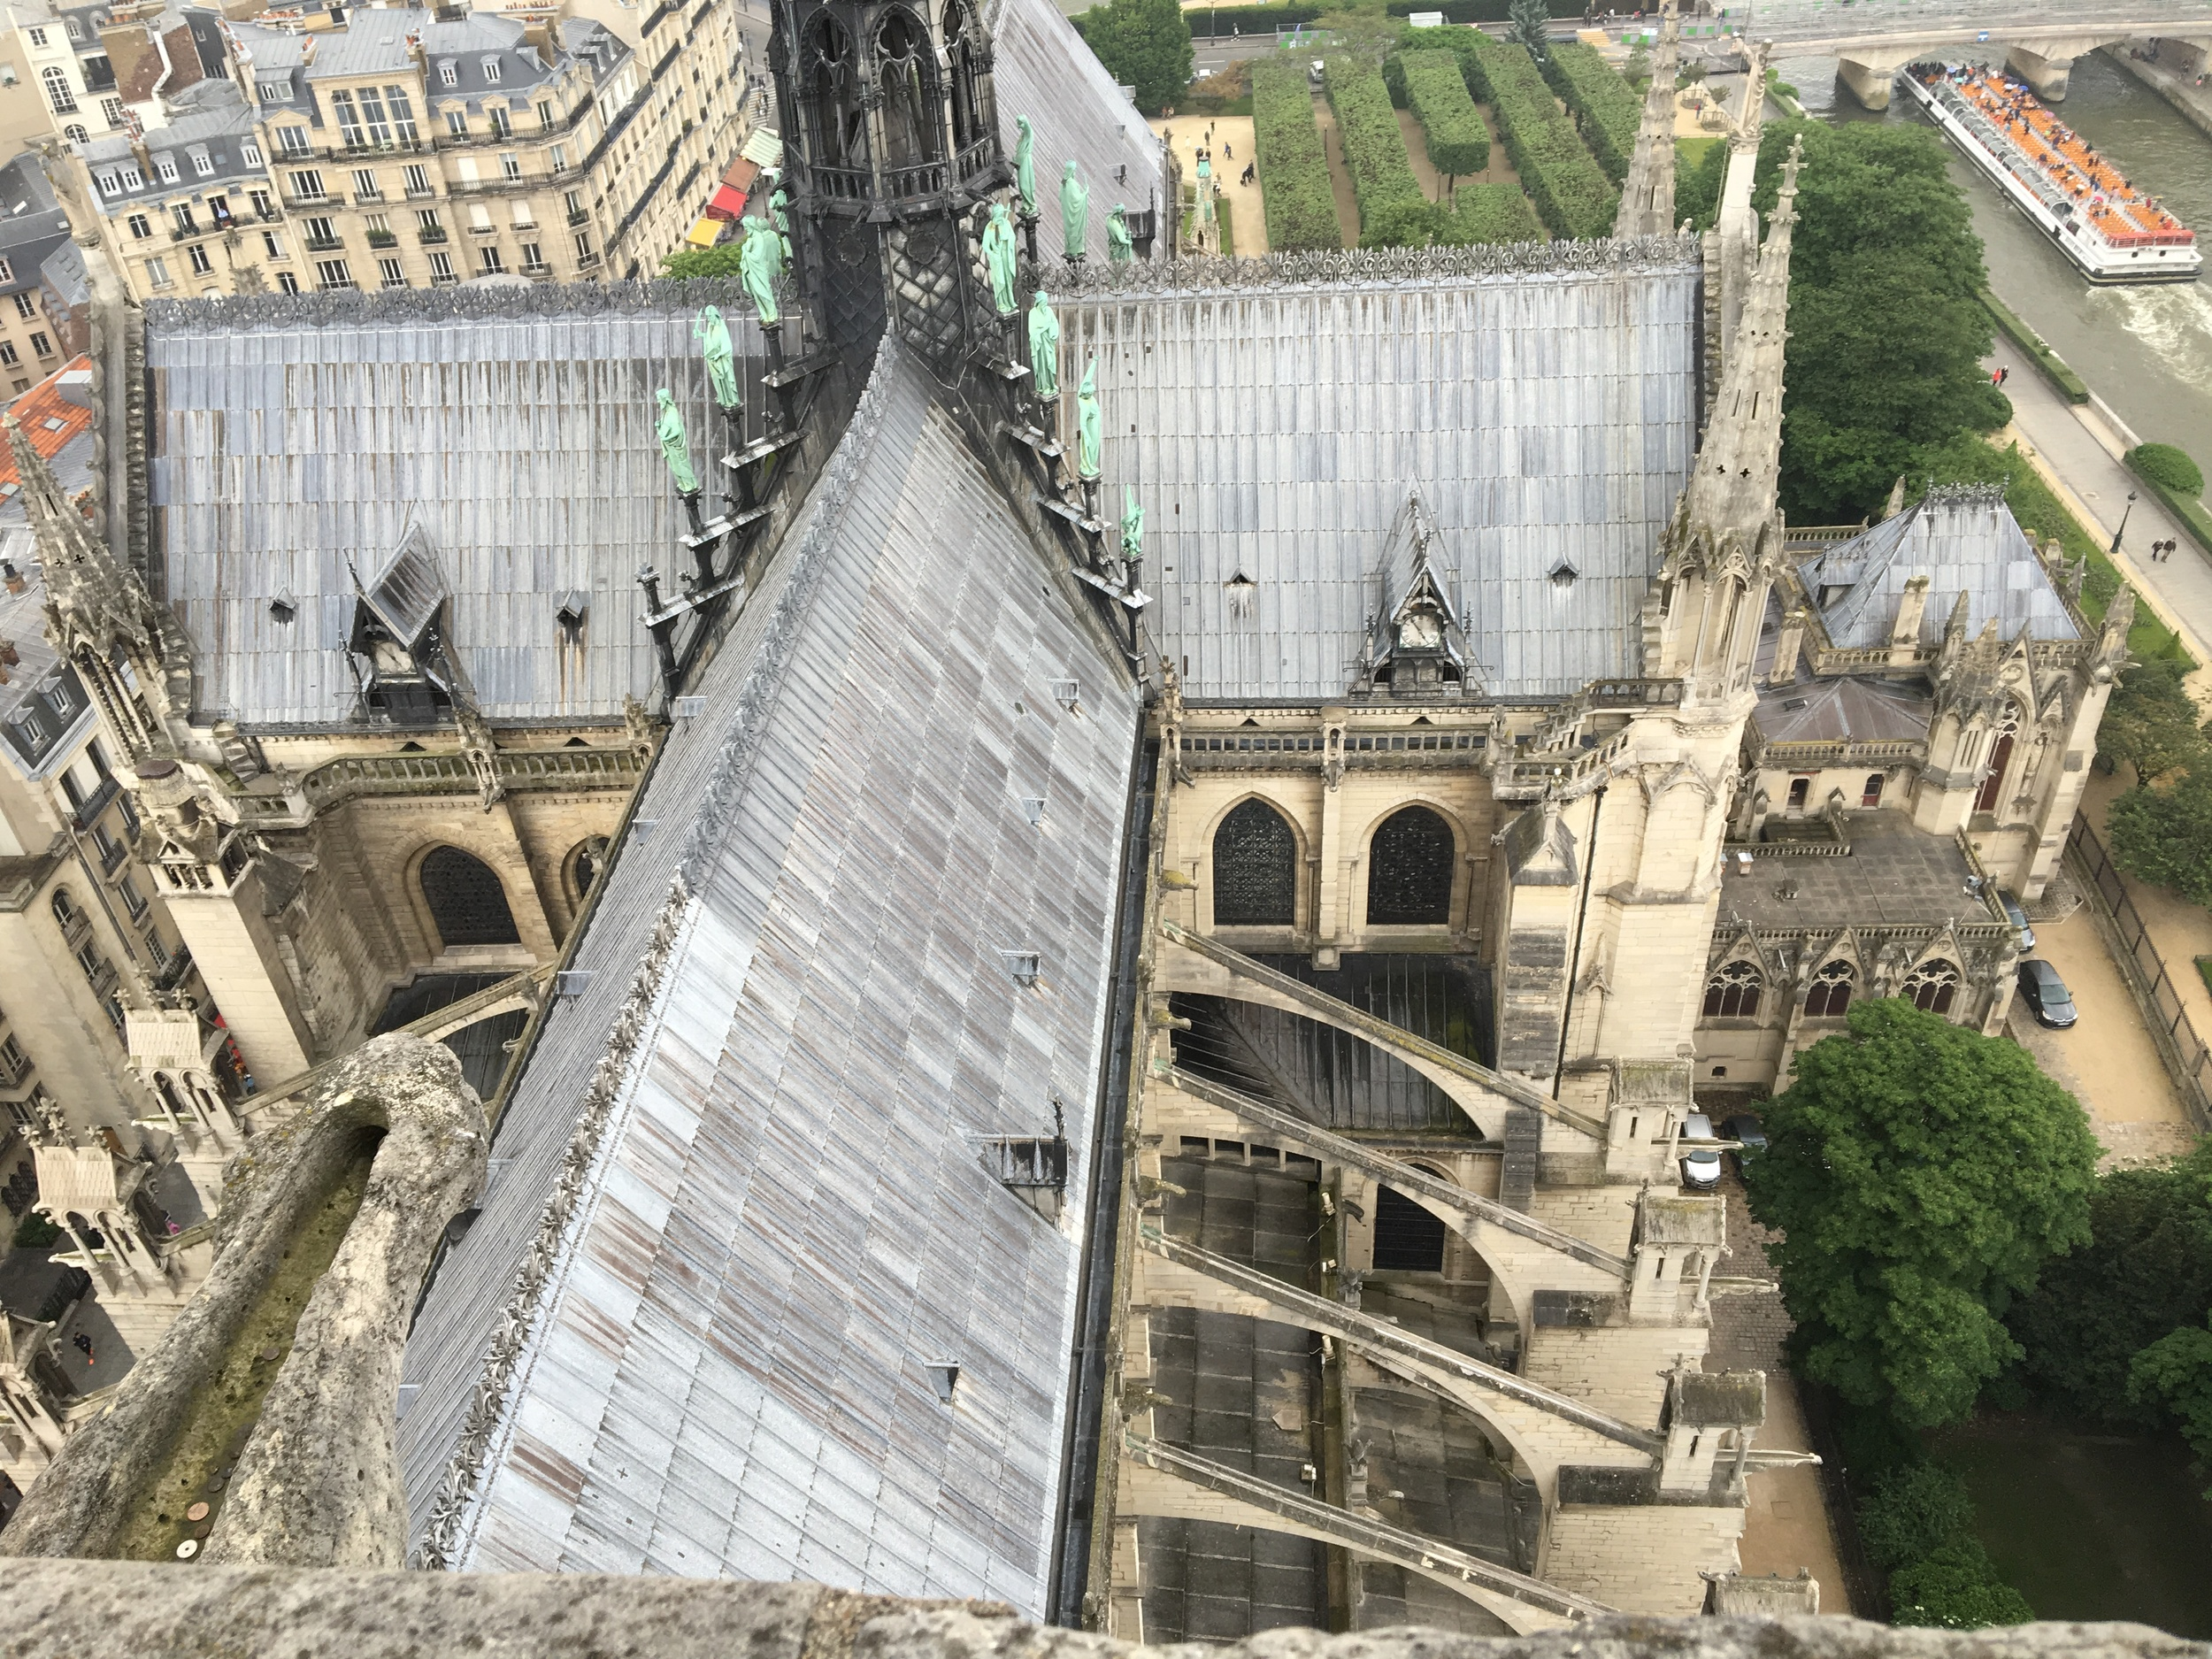 Seeing the flying buttresses used int he architecture was highlight for the young designer!